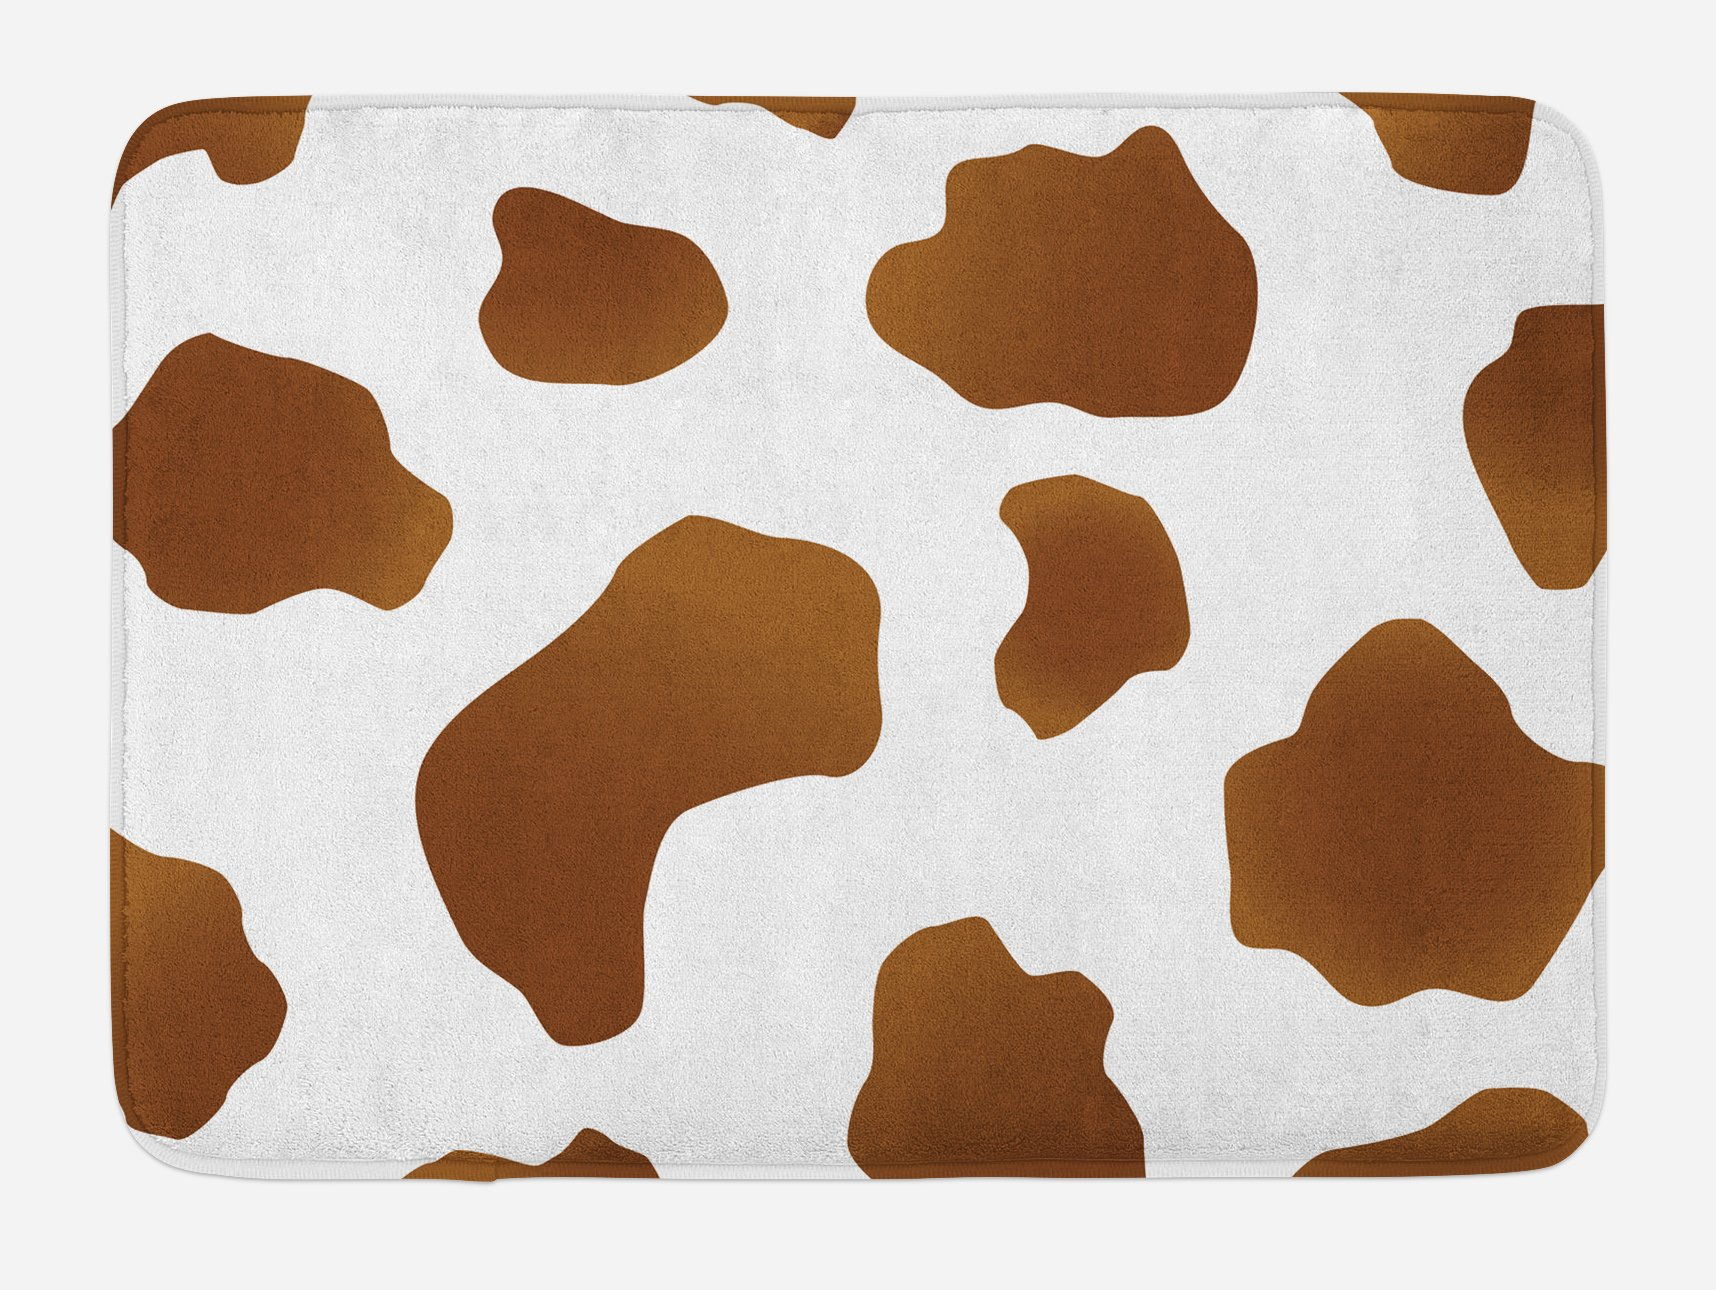 Ambesonne Cow Print Bath Mat, Brown Spots on a White Cow Skin Abstract Art Cattle Fur Farm Animals Cowboy Barn, Plush Bathroom Decor Mat with Non Slip Backing, 29.5 W X 17.5 W Inches, White Brown